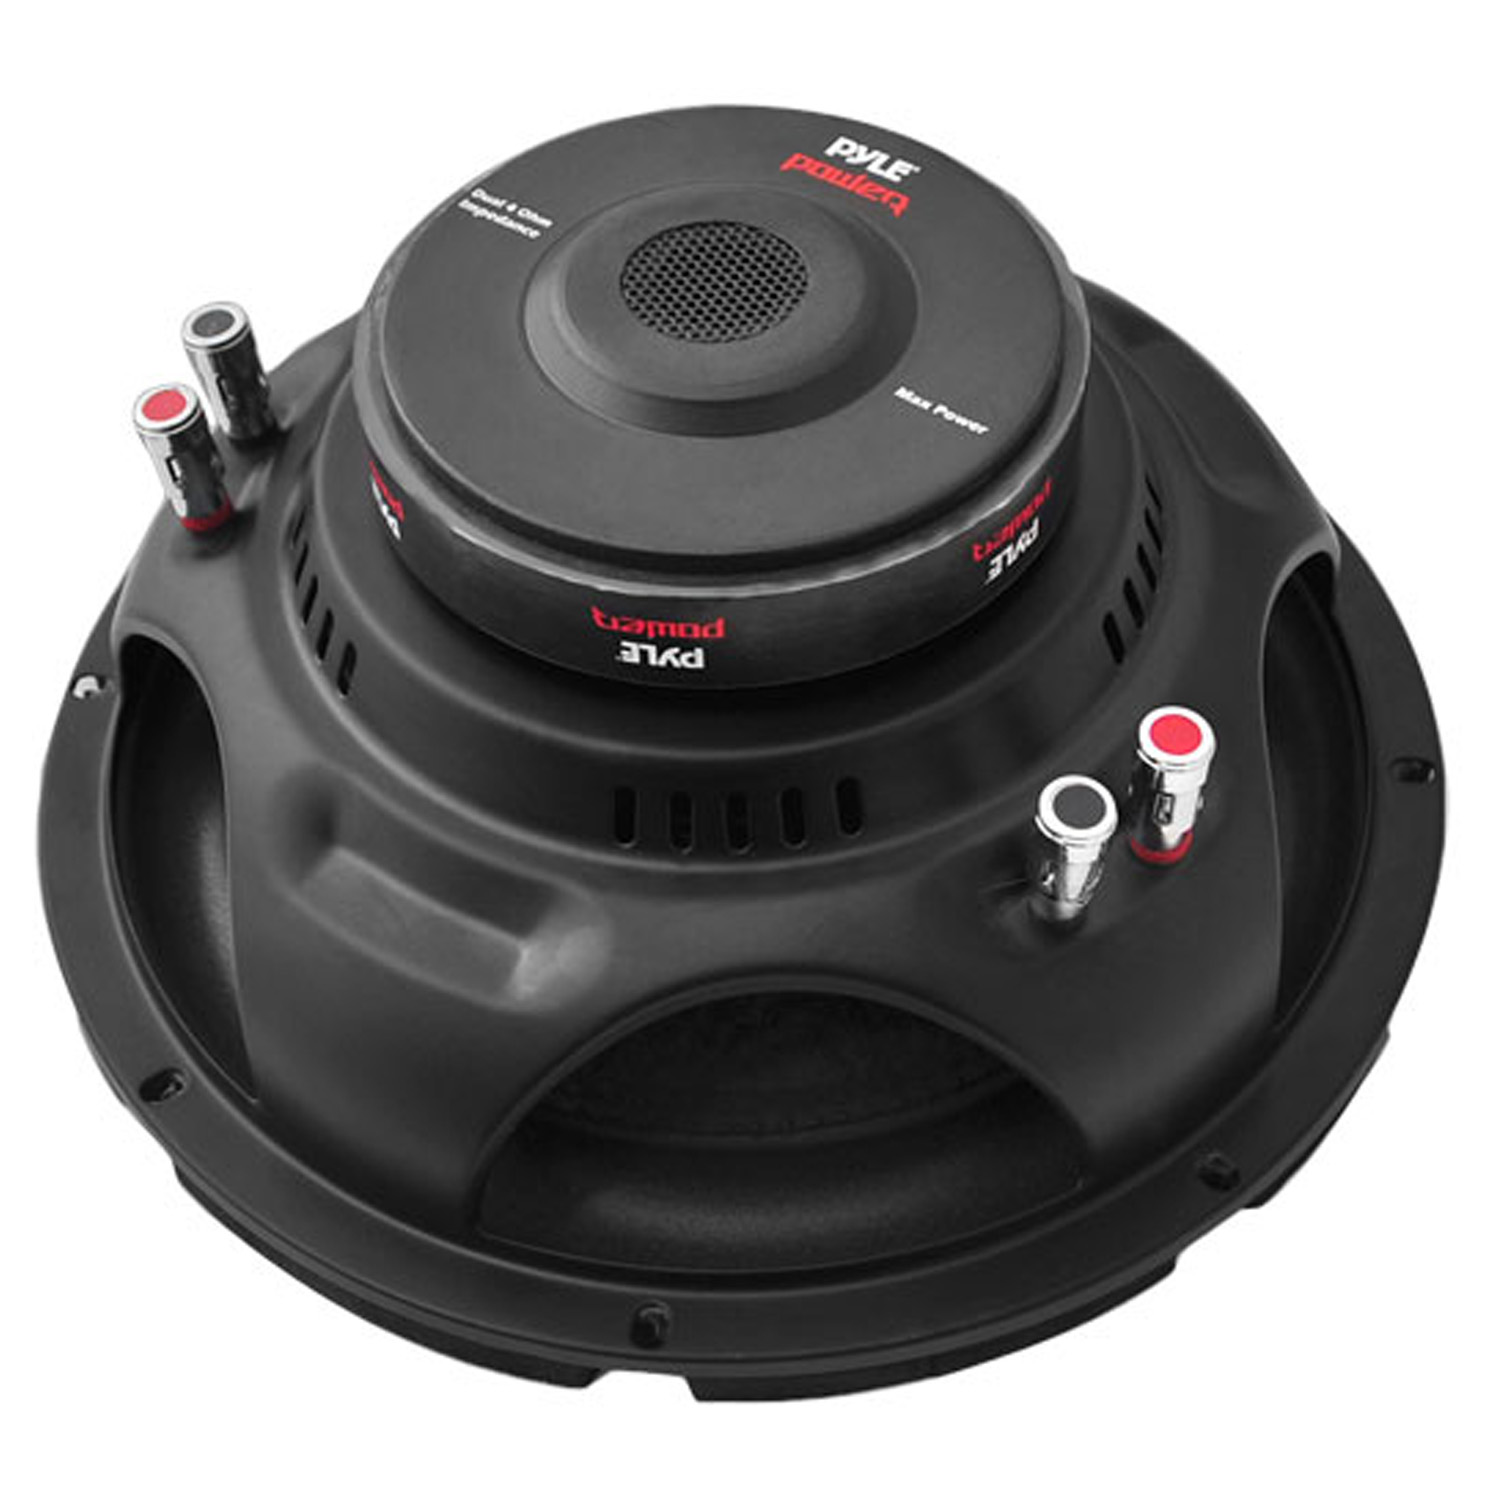 PYLE PLPW8D - Car Subwoofer Audio Speaker - 8in Non-Pressed Paper Cone, Black Steel Basket, Dual Voice Coil 4 Ohm Impedance, 800 Watt Power and Foam Surround for Vehicle Stereo Sound System